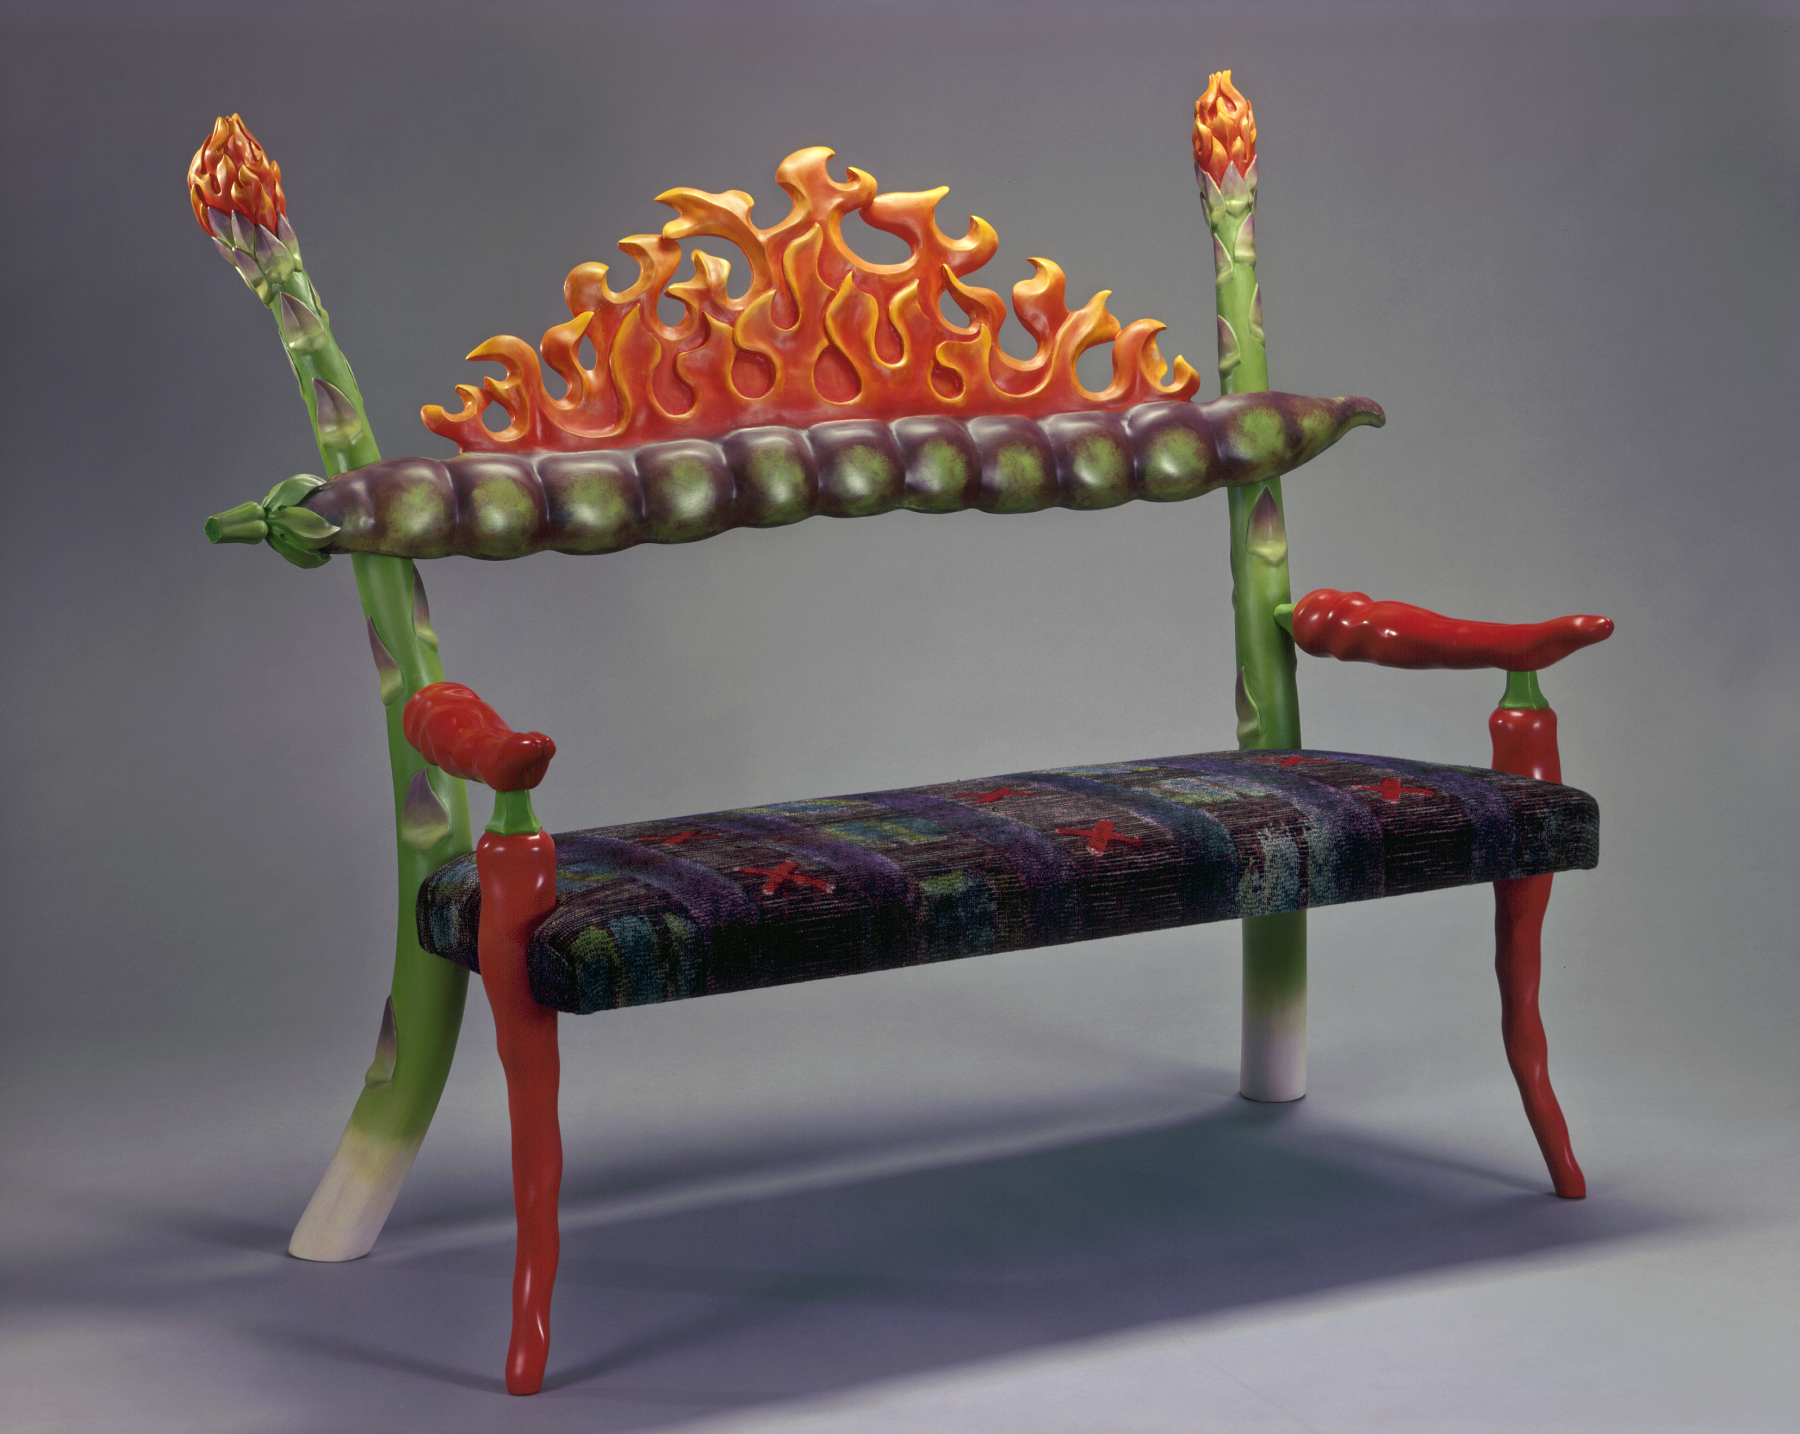 Craig Nutt,   Burning , 2002, Oil Paint and Lacquer on wood, fabric by Janet Taylor.